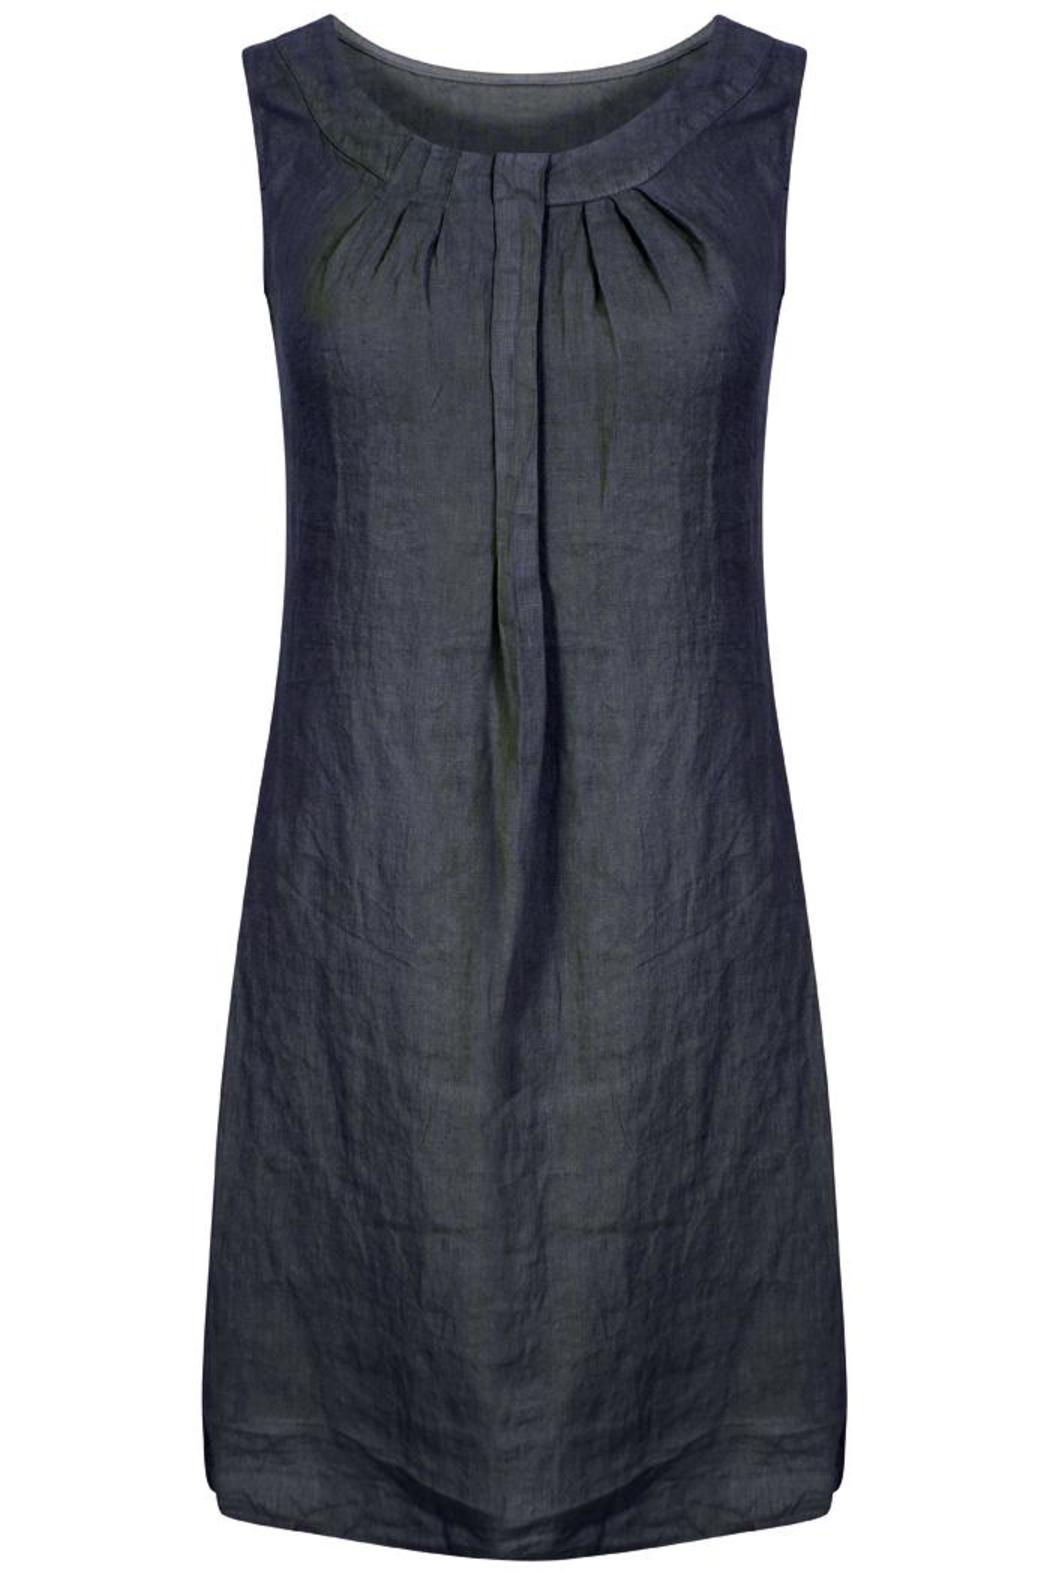 Italian Collection Italian Linen Dress From West Yorkshire